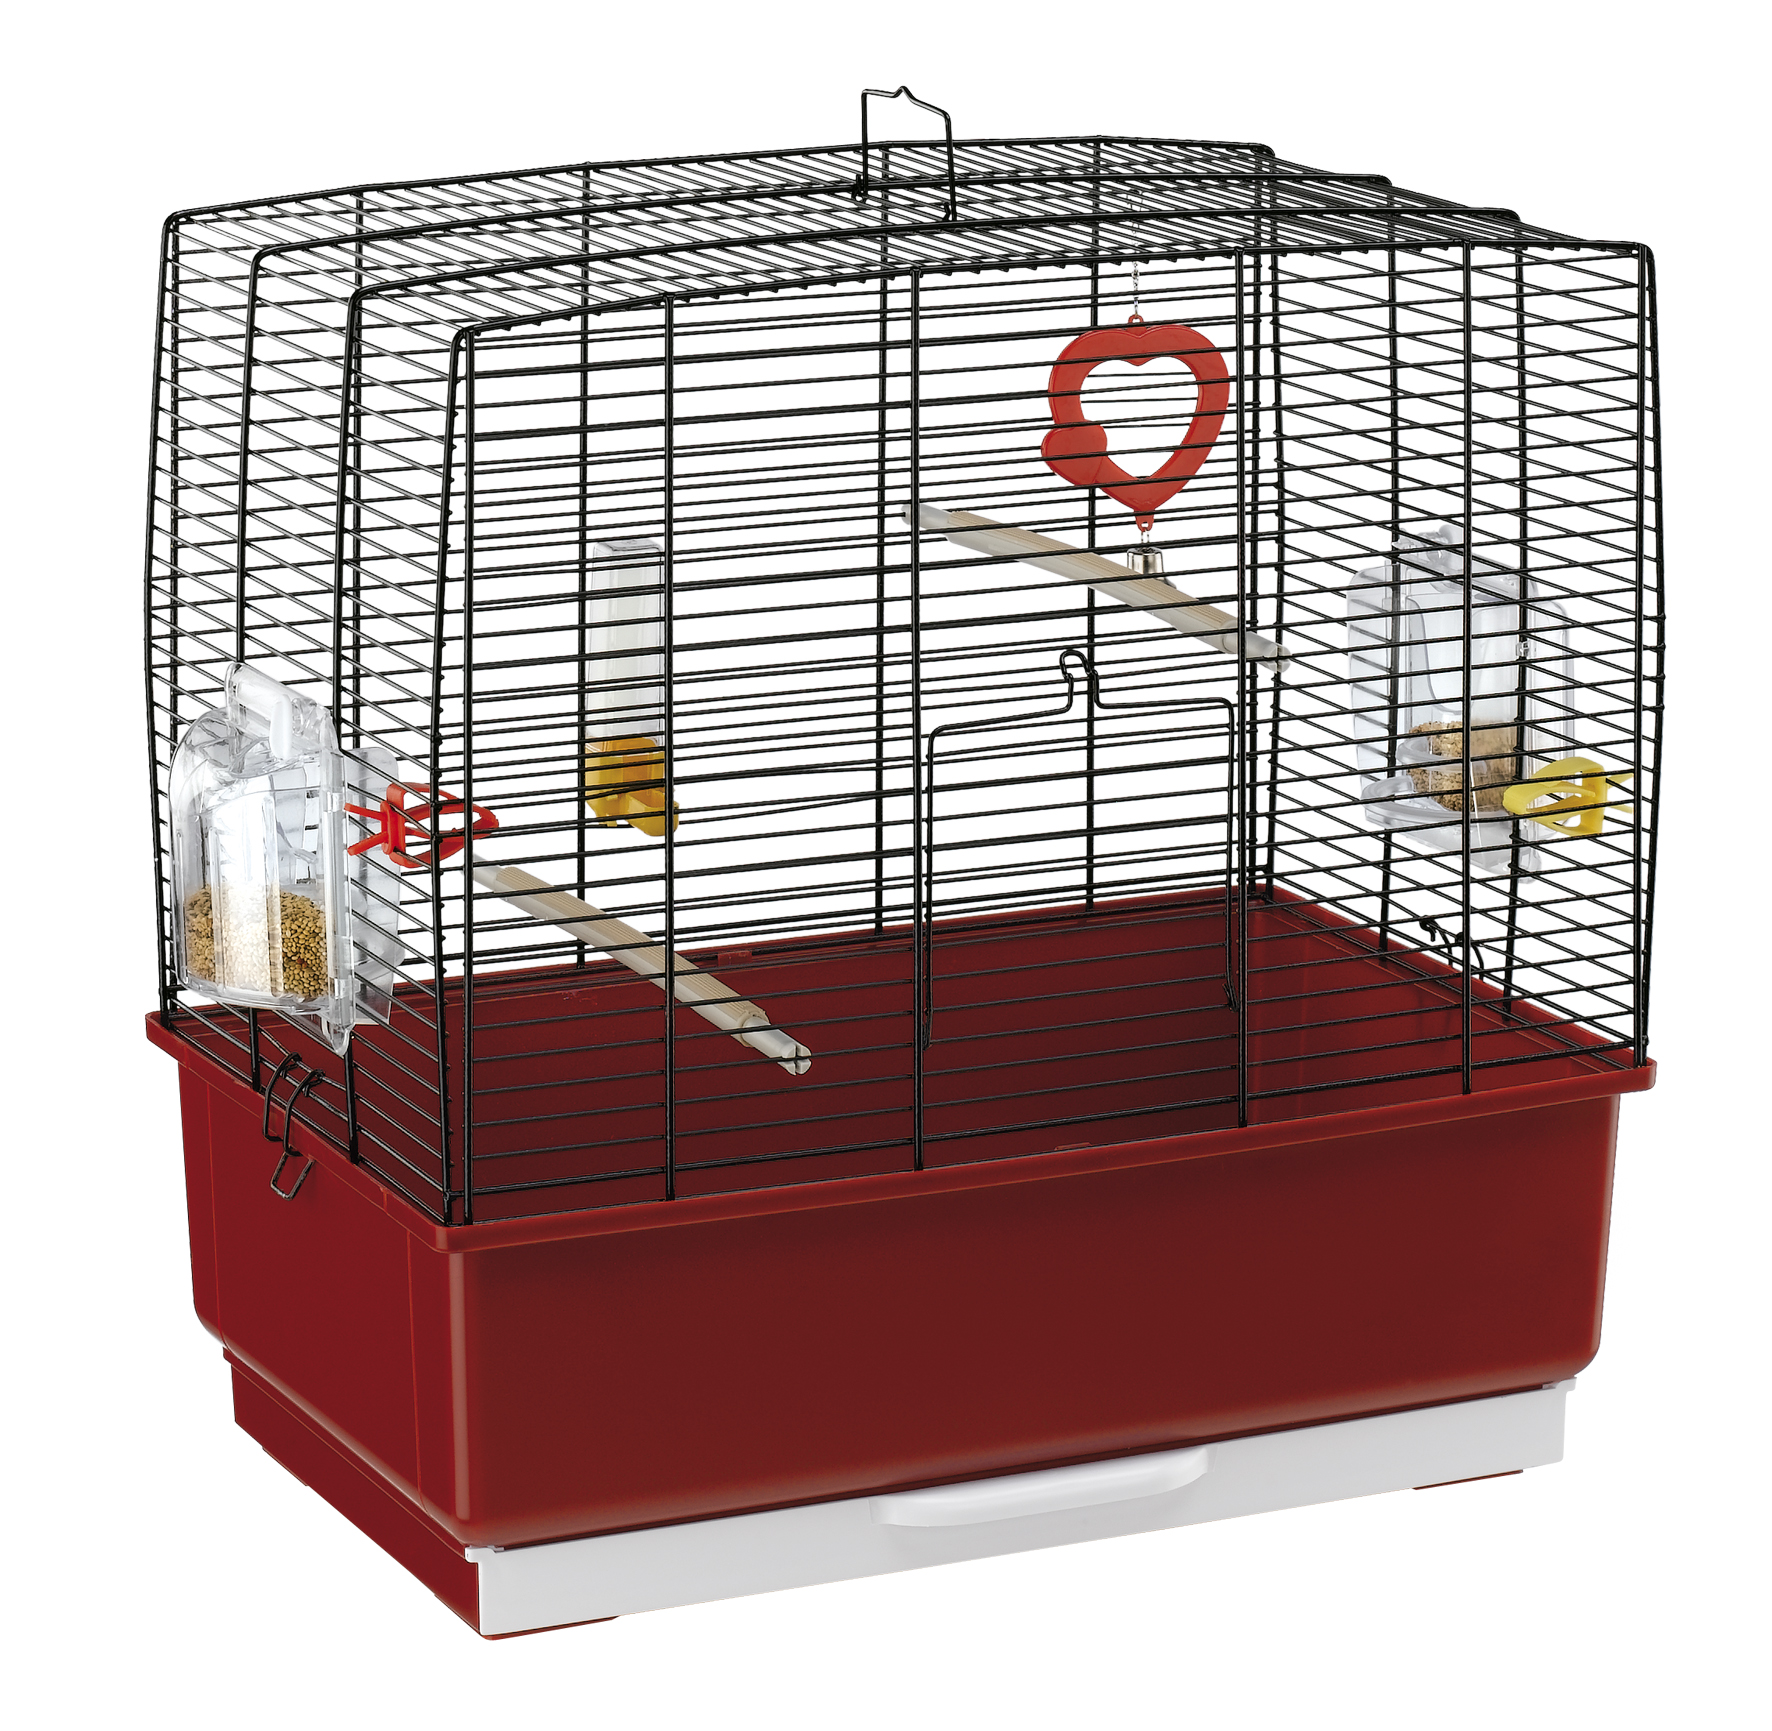 Ferplast Rekord 3 Bird Cages